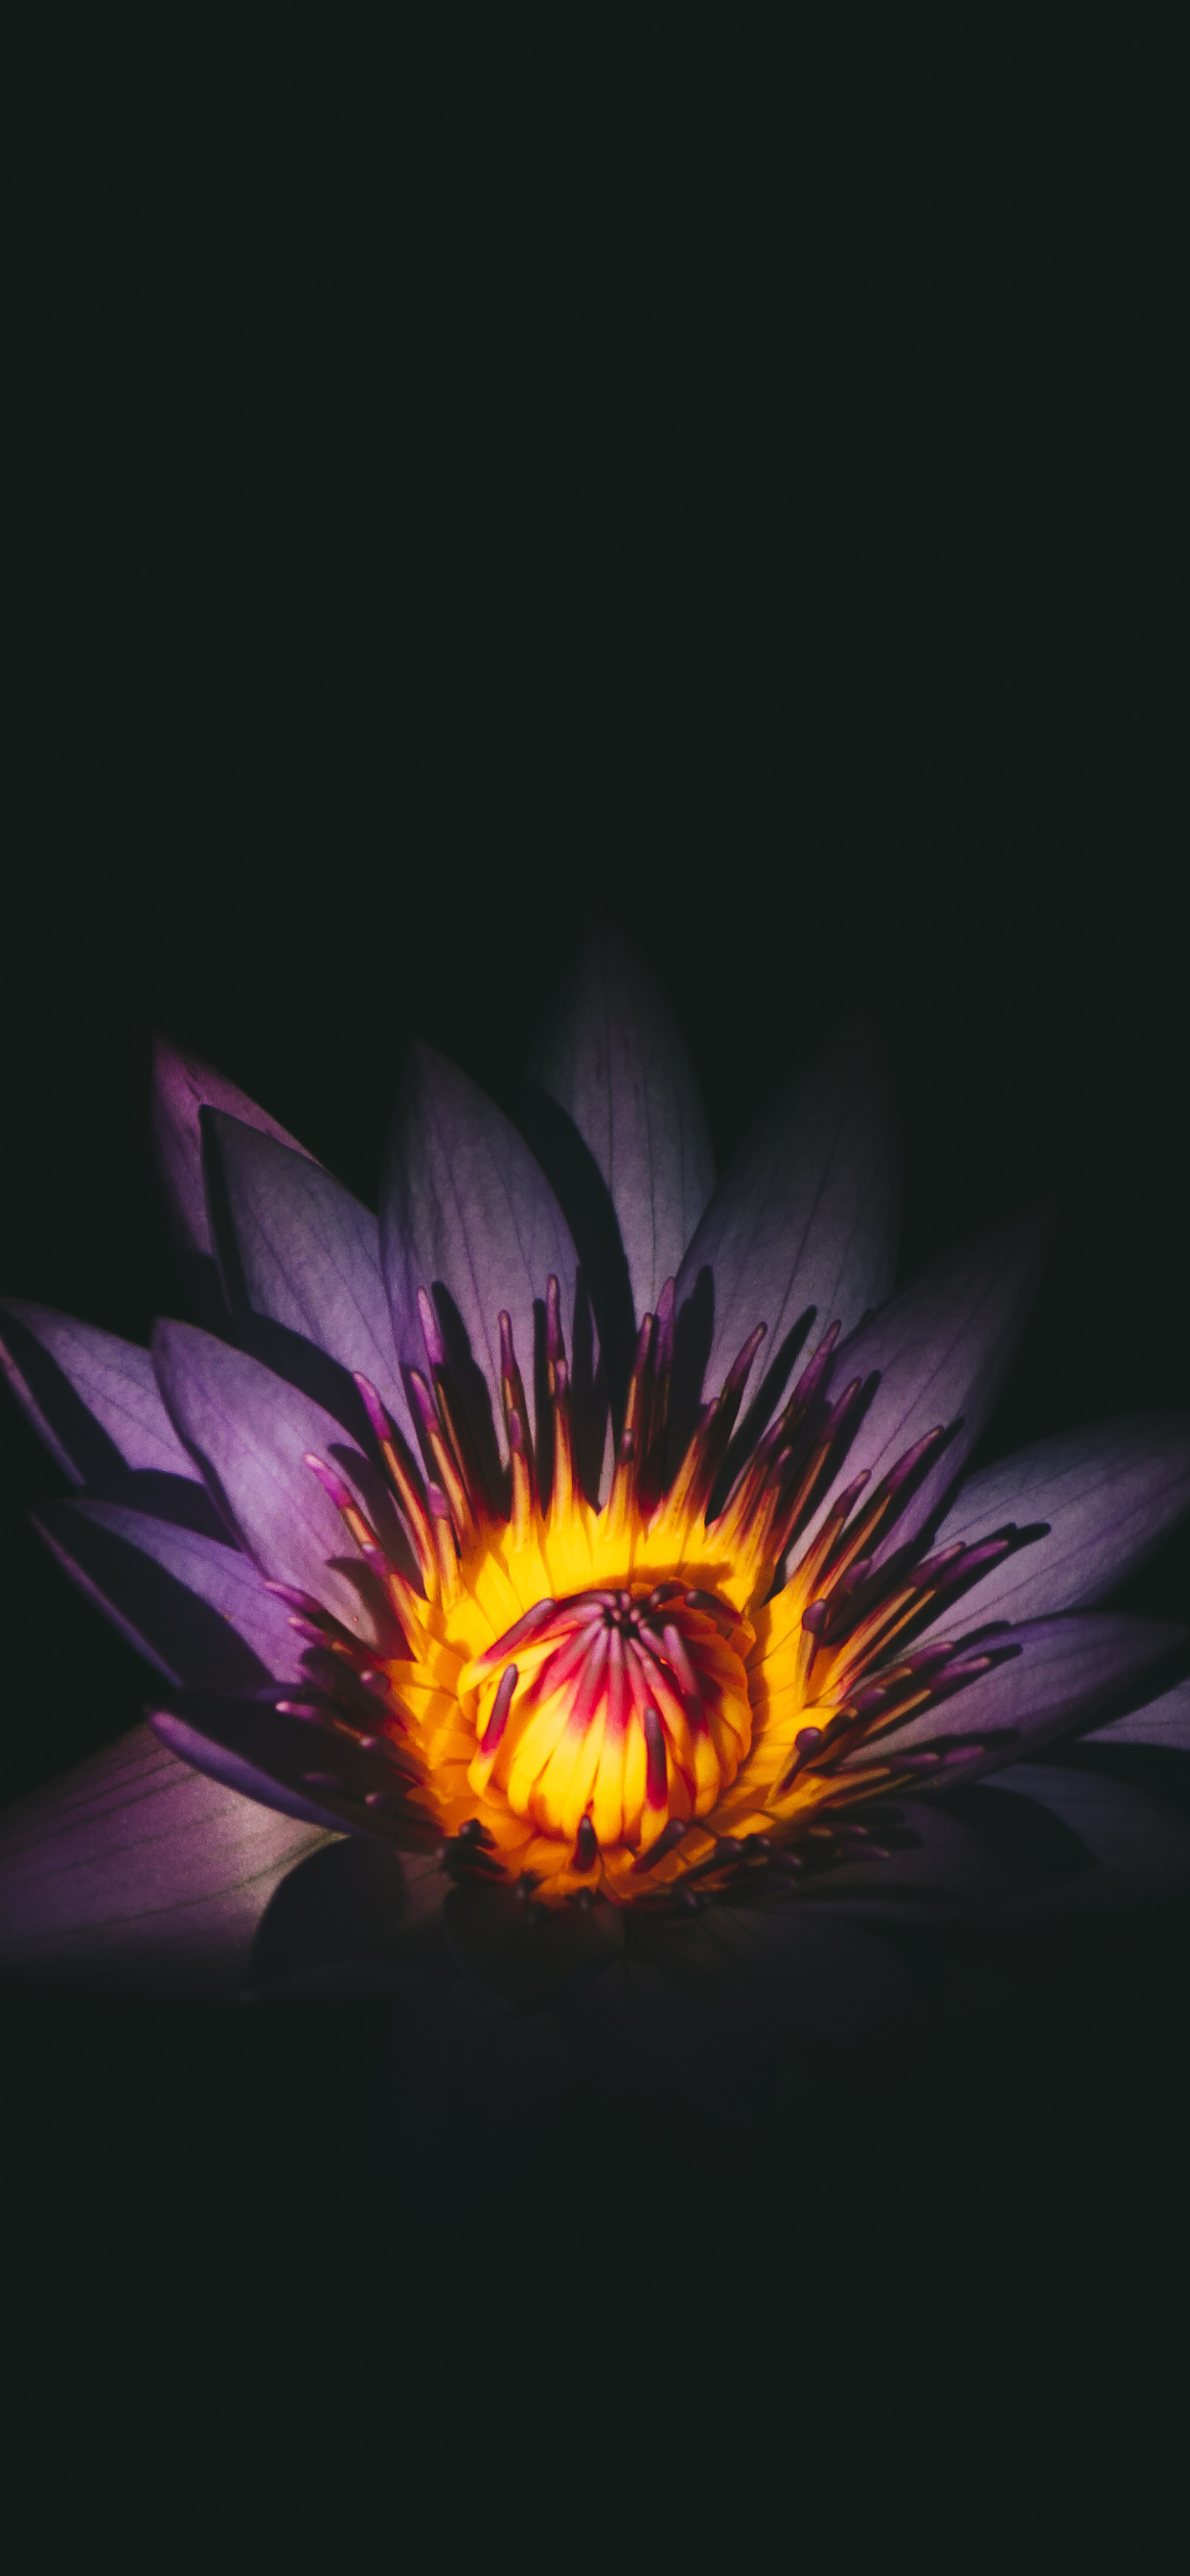 iPhone wallpapers flowers dark purple Flowers